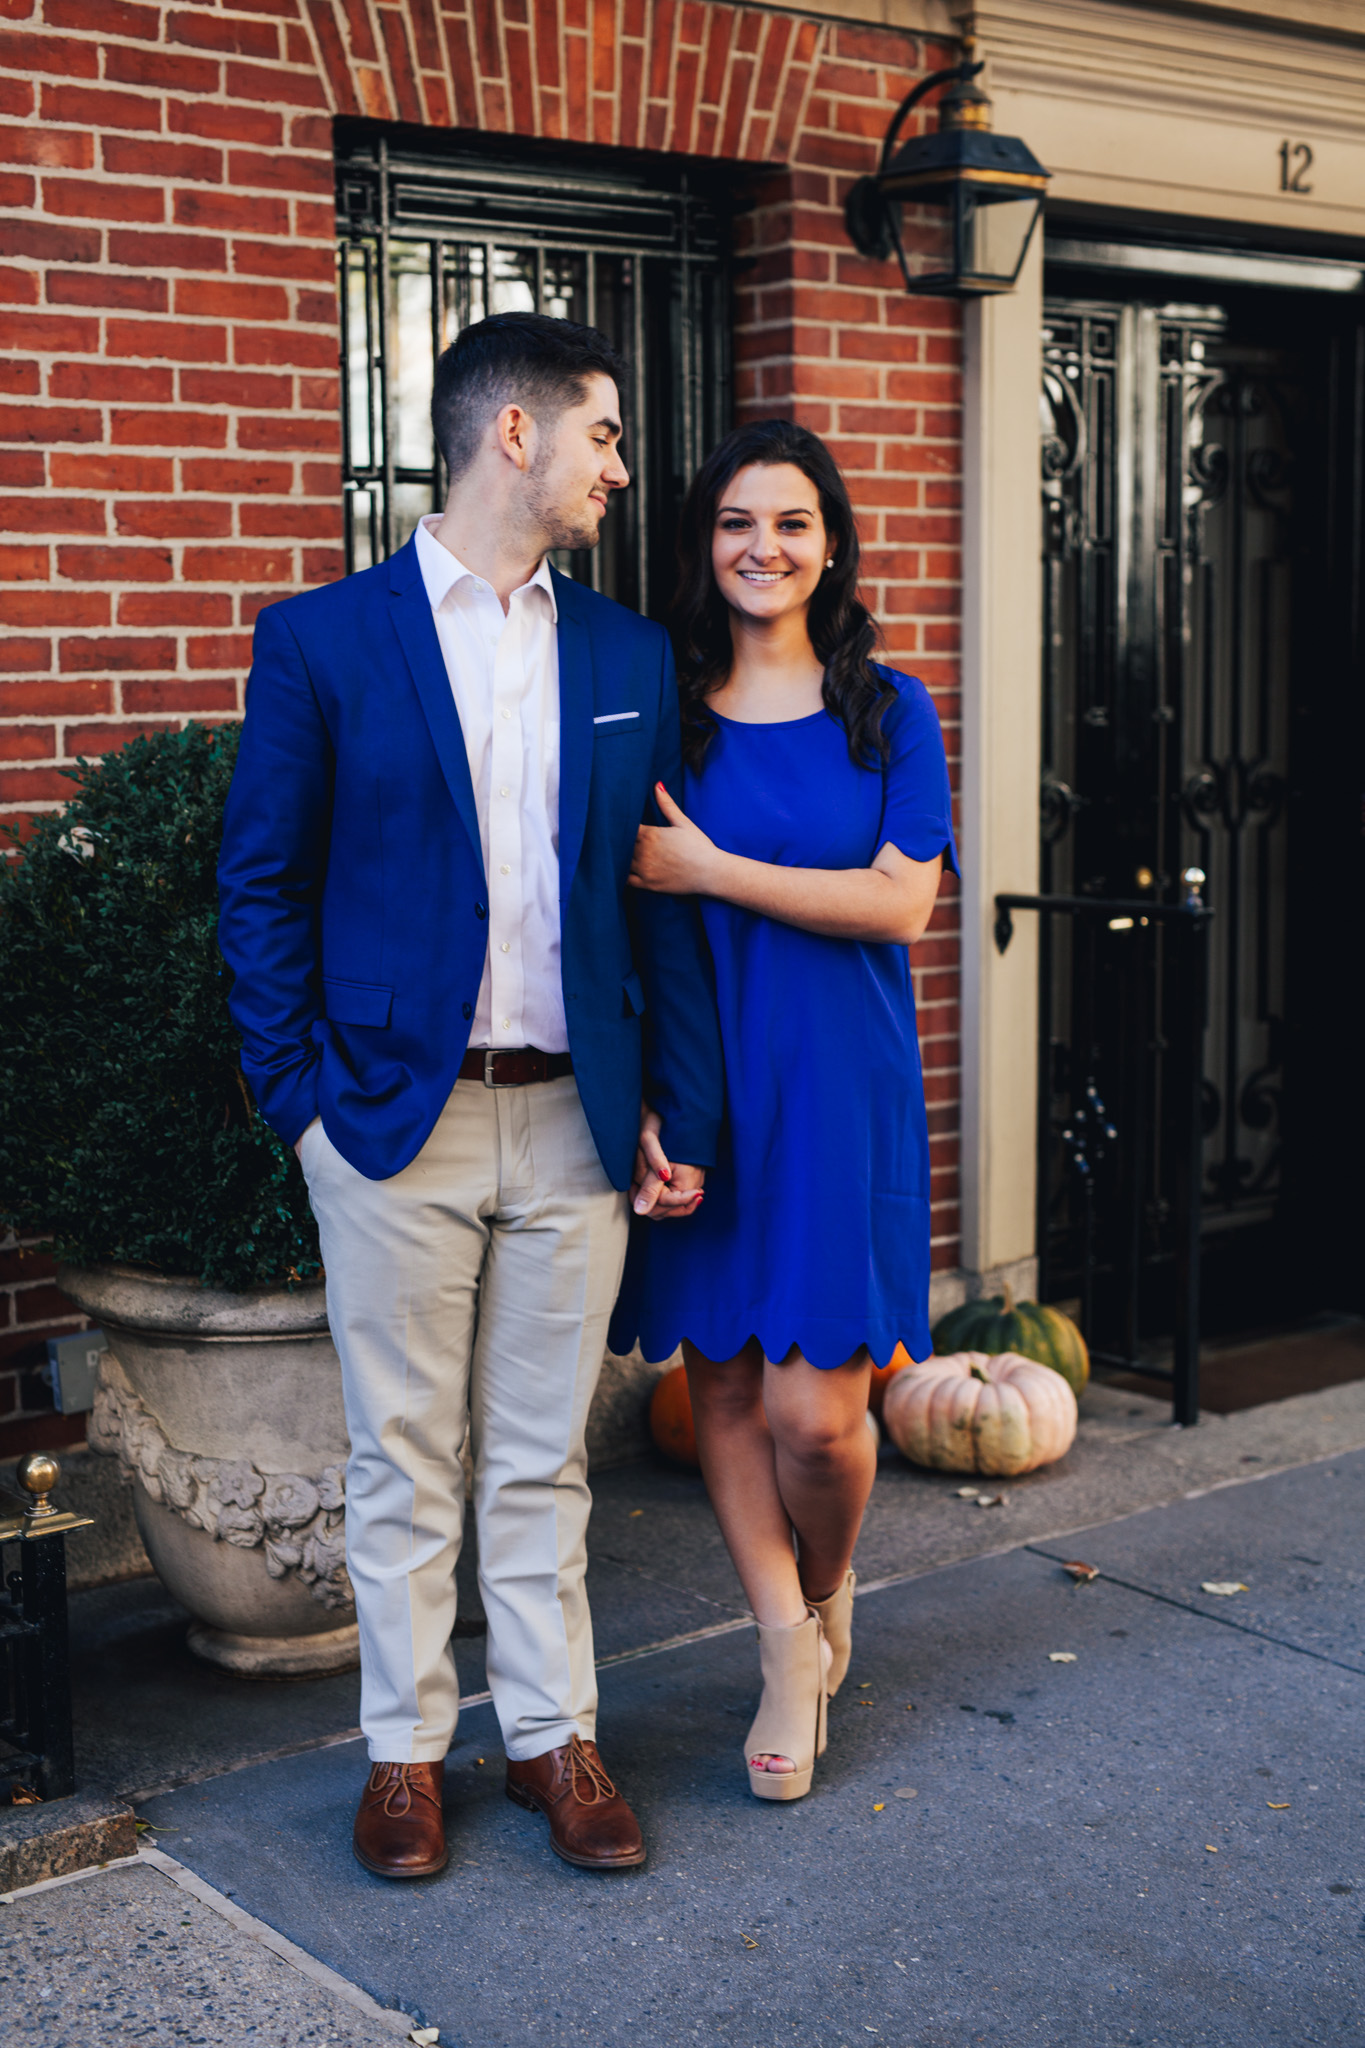 Fall-NYC-Engagement (25 of 31).jpg